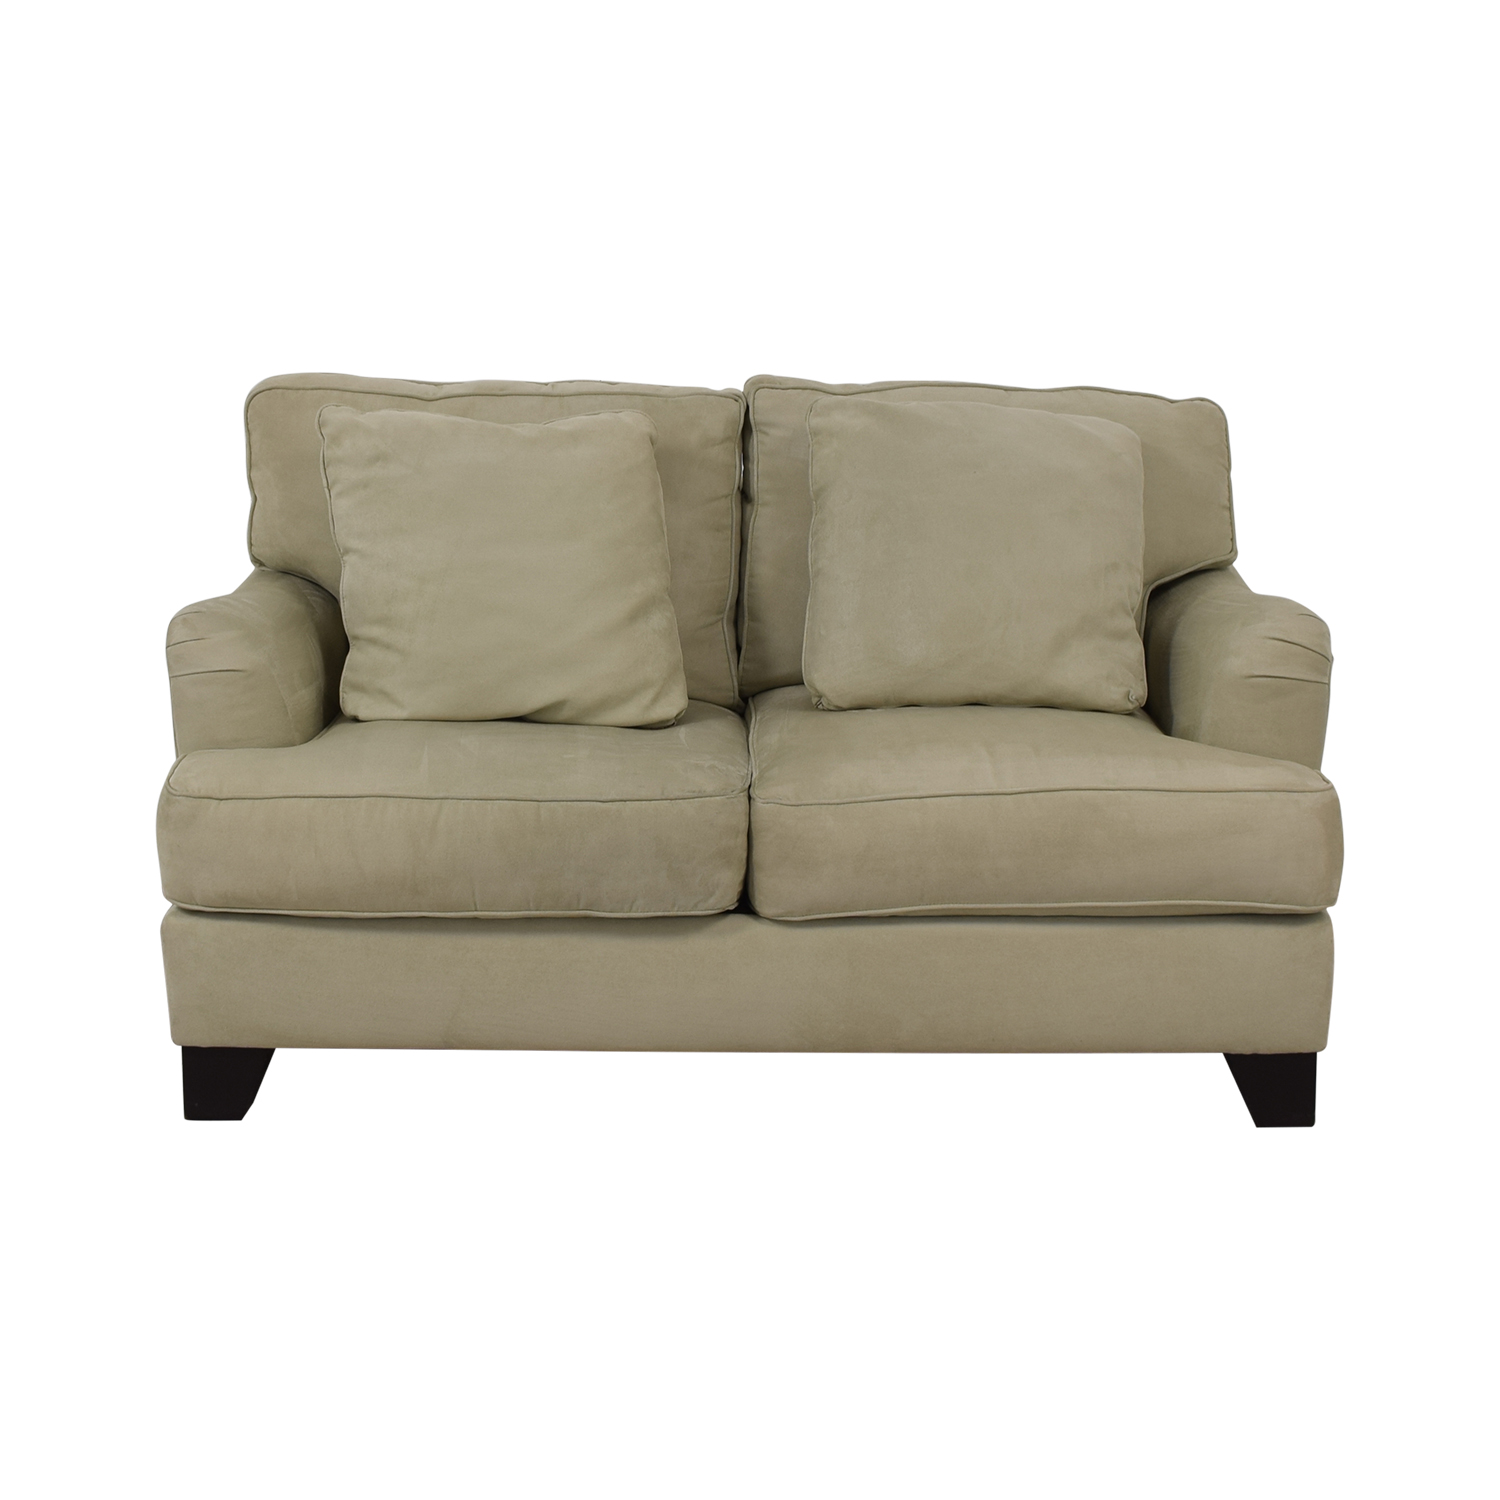 buy Bloomingdale's Bloomingdale's Loveseat online